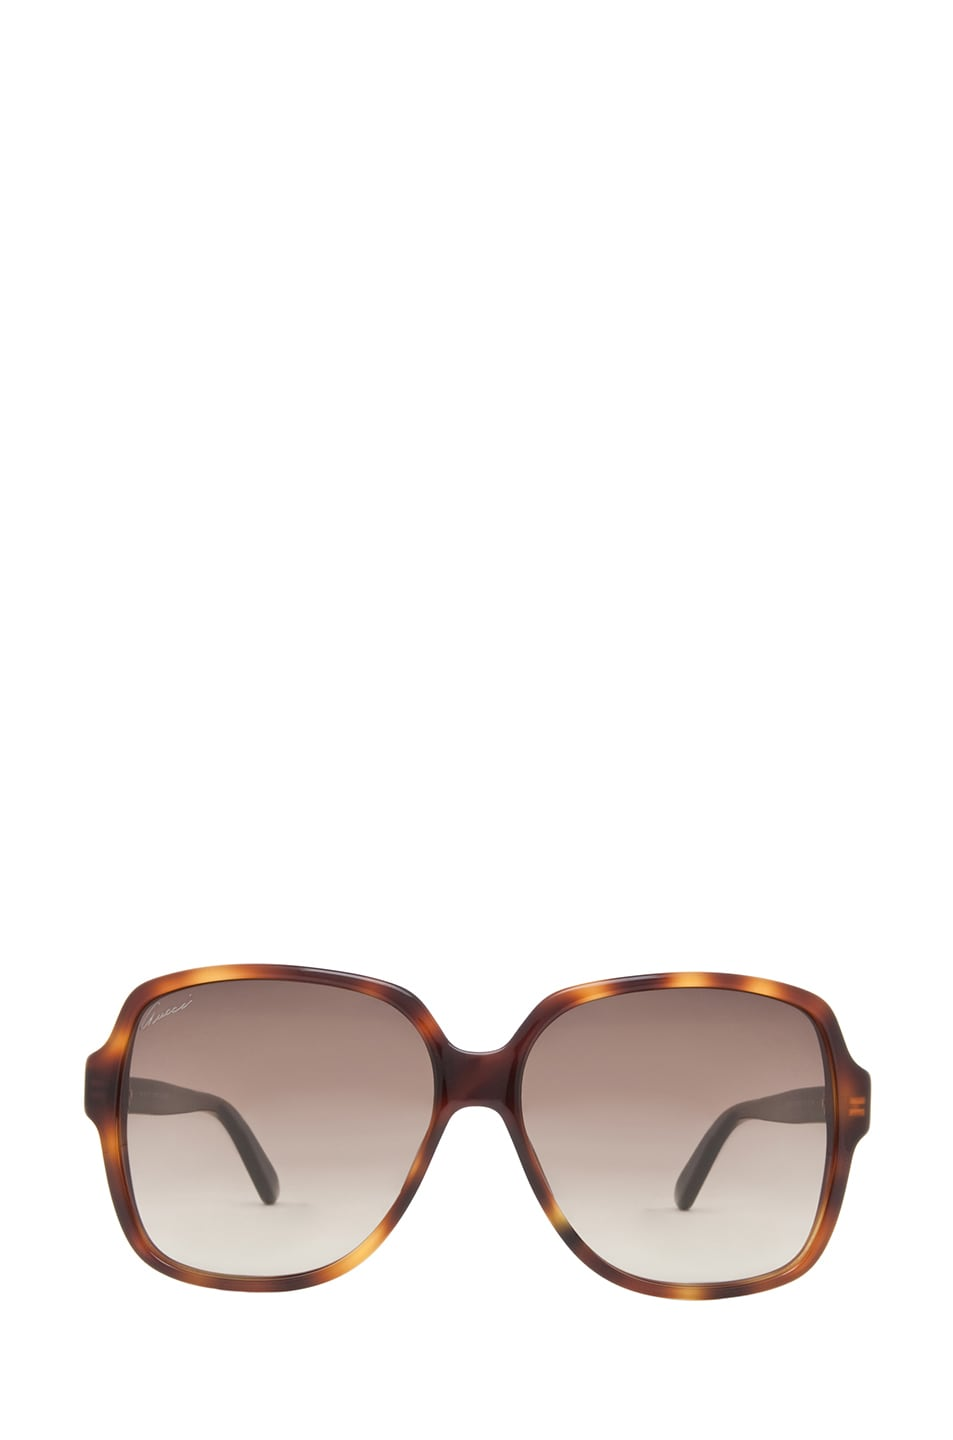 Image 1 of Gucci 3582 Sunglasses in Havana & Brown Gradient